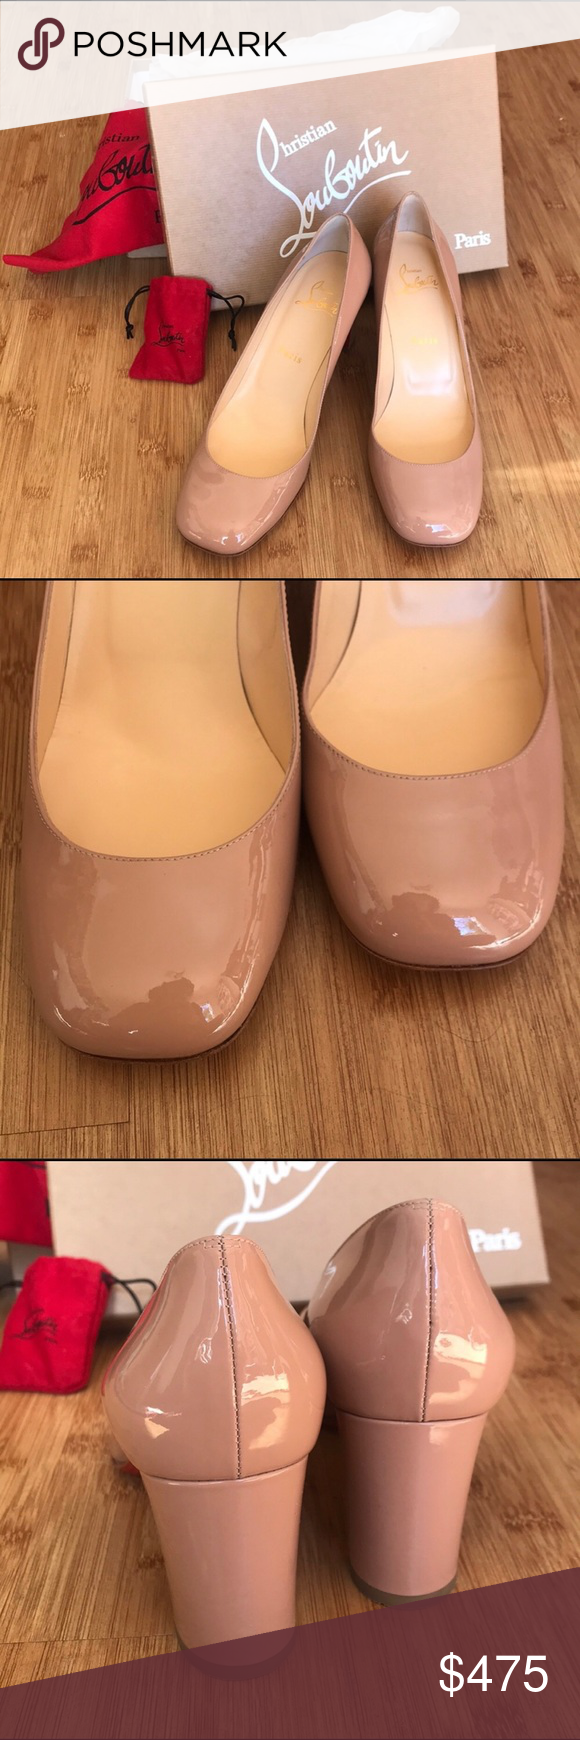 separation shoes b5d37 83dc2 Christian Louboutin Cadrilla 70 Patent in Nude These are ...